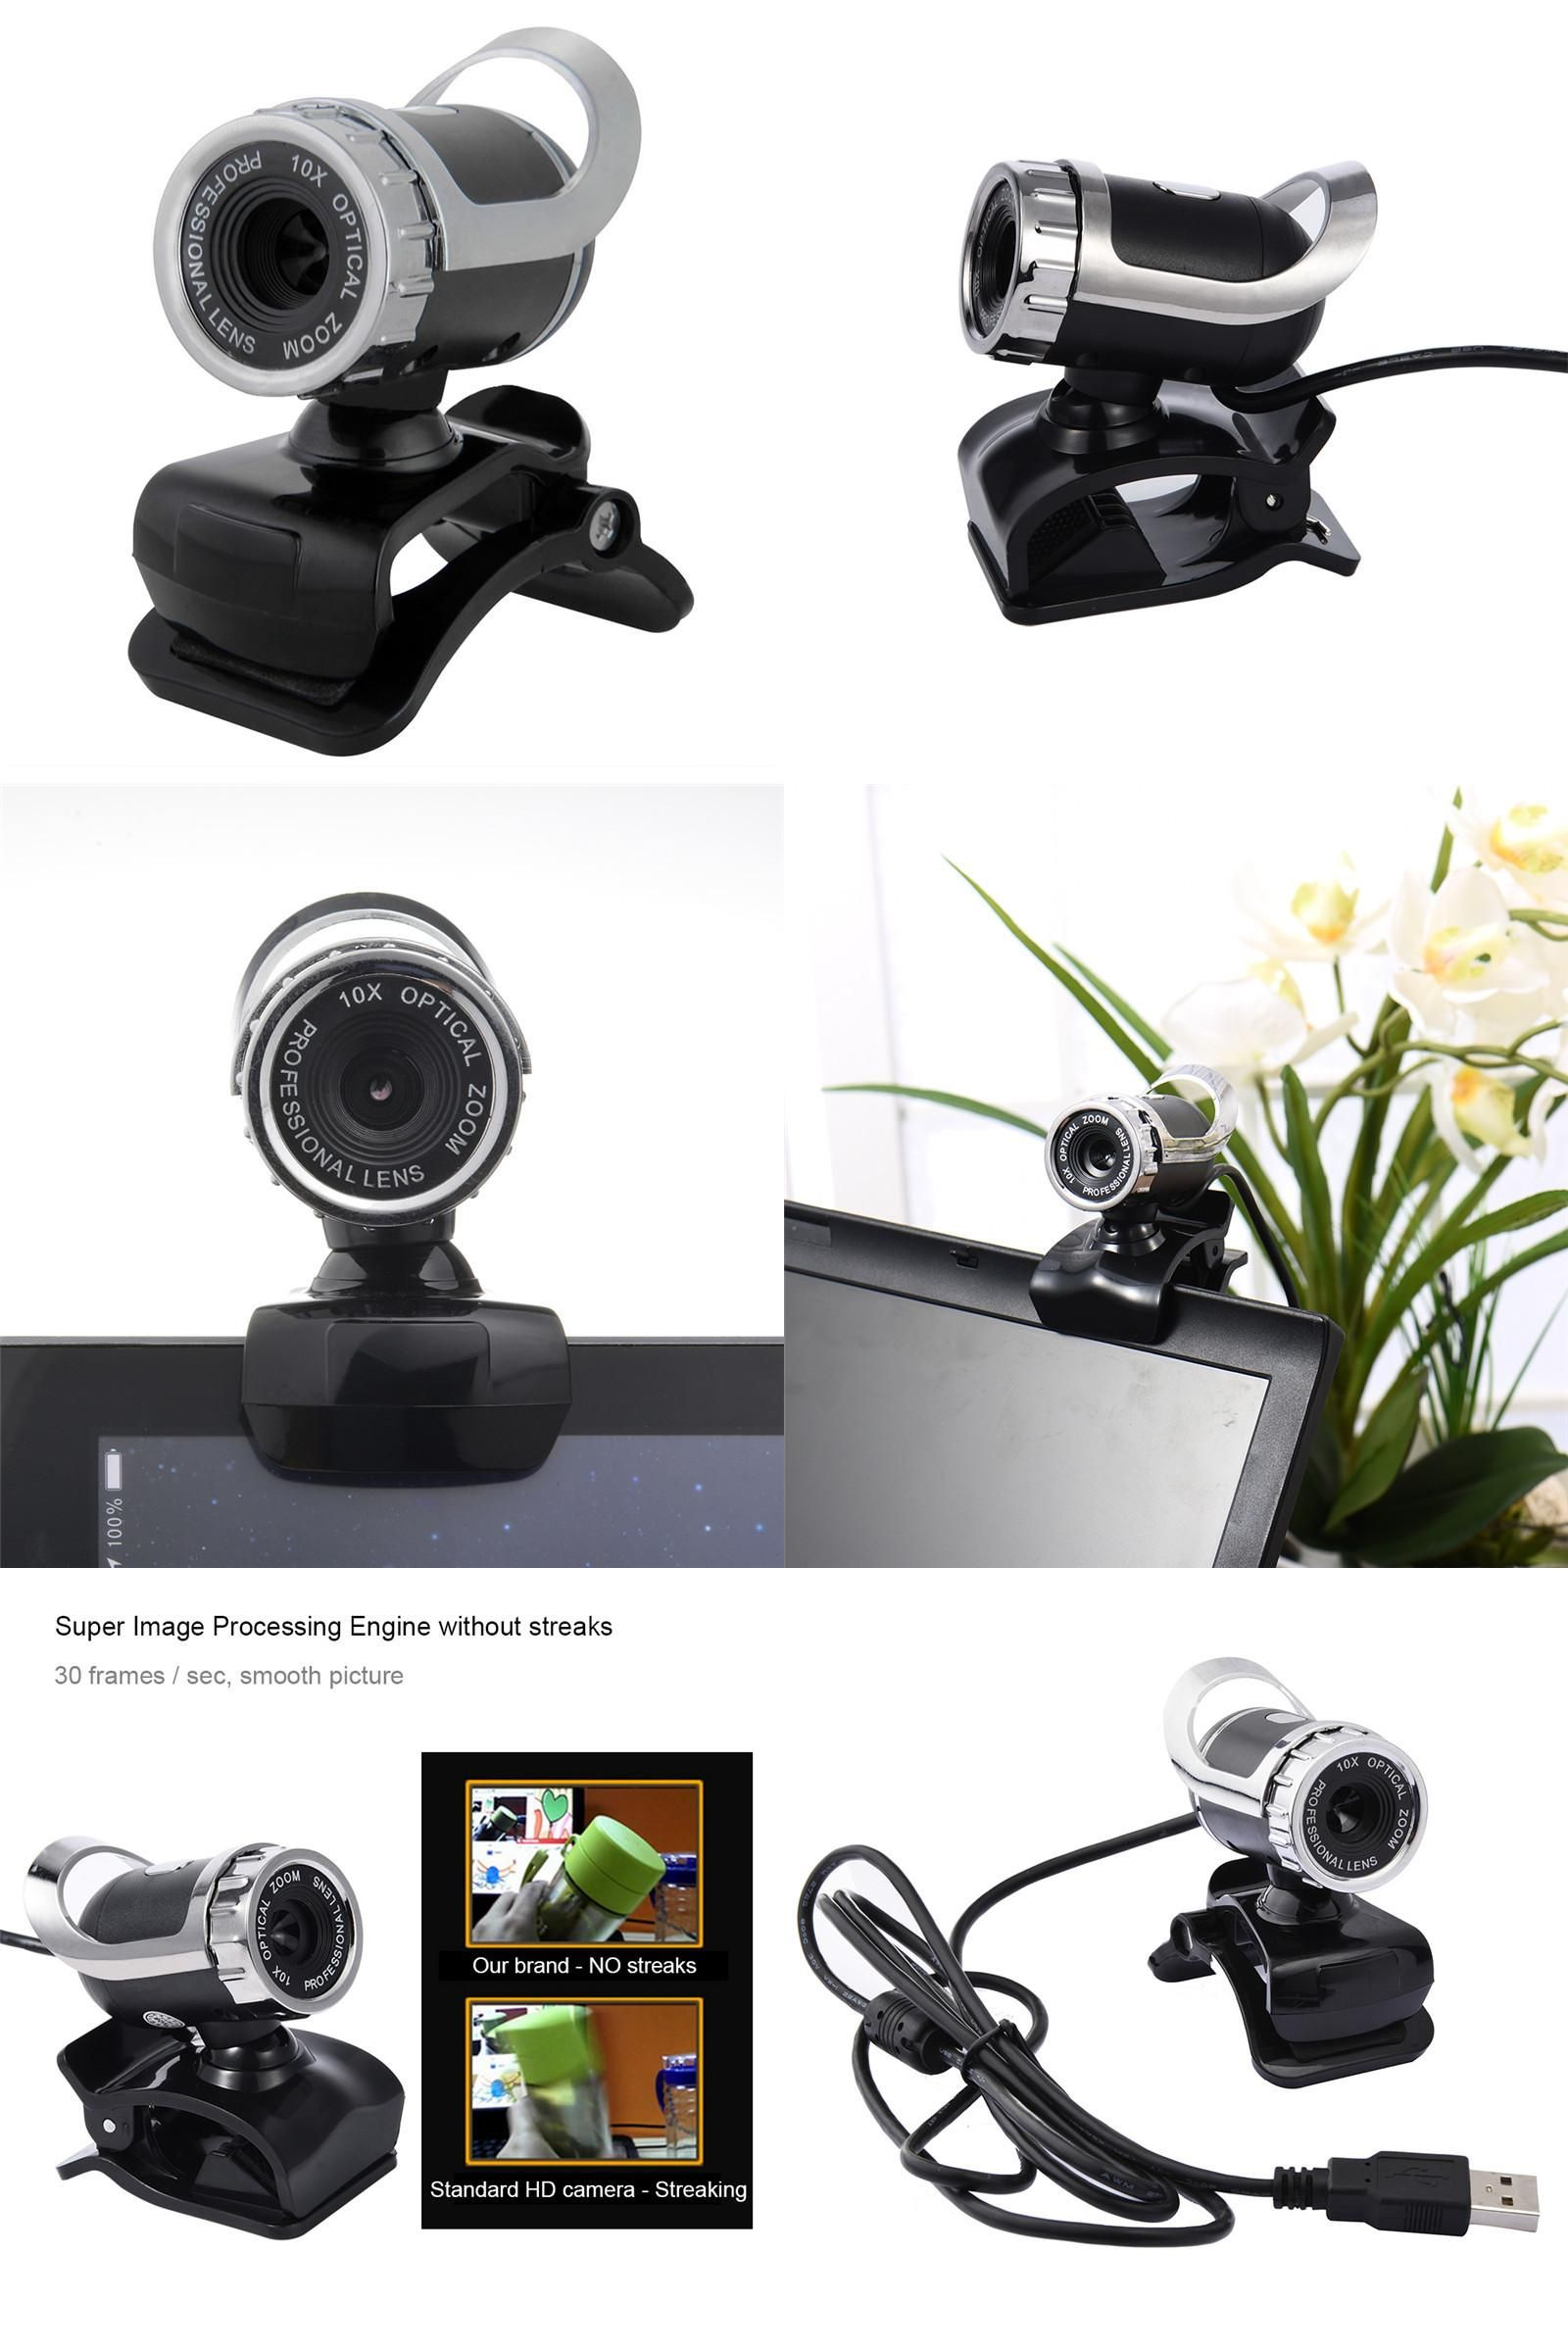 [Visit to Buy] Brand New A859 USB 2.0 Web Cam 20 Meg HD Web